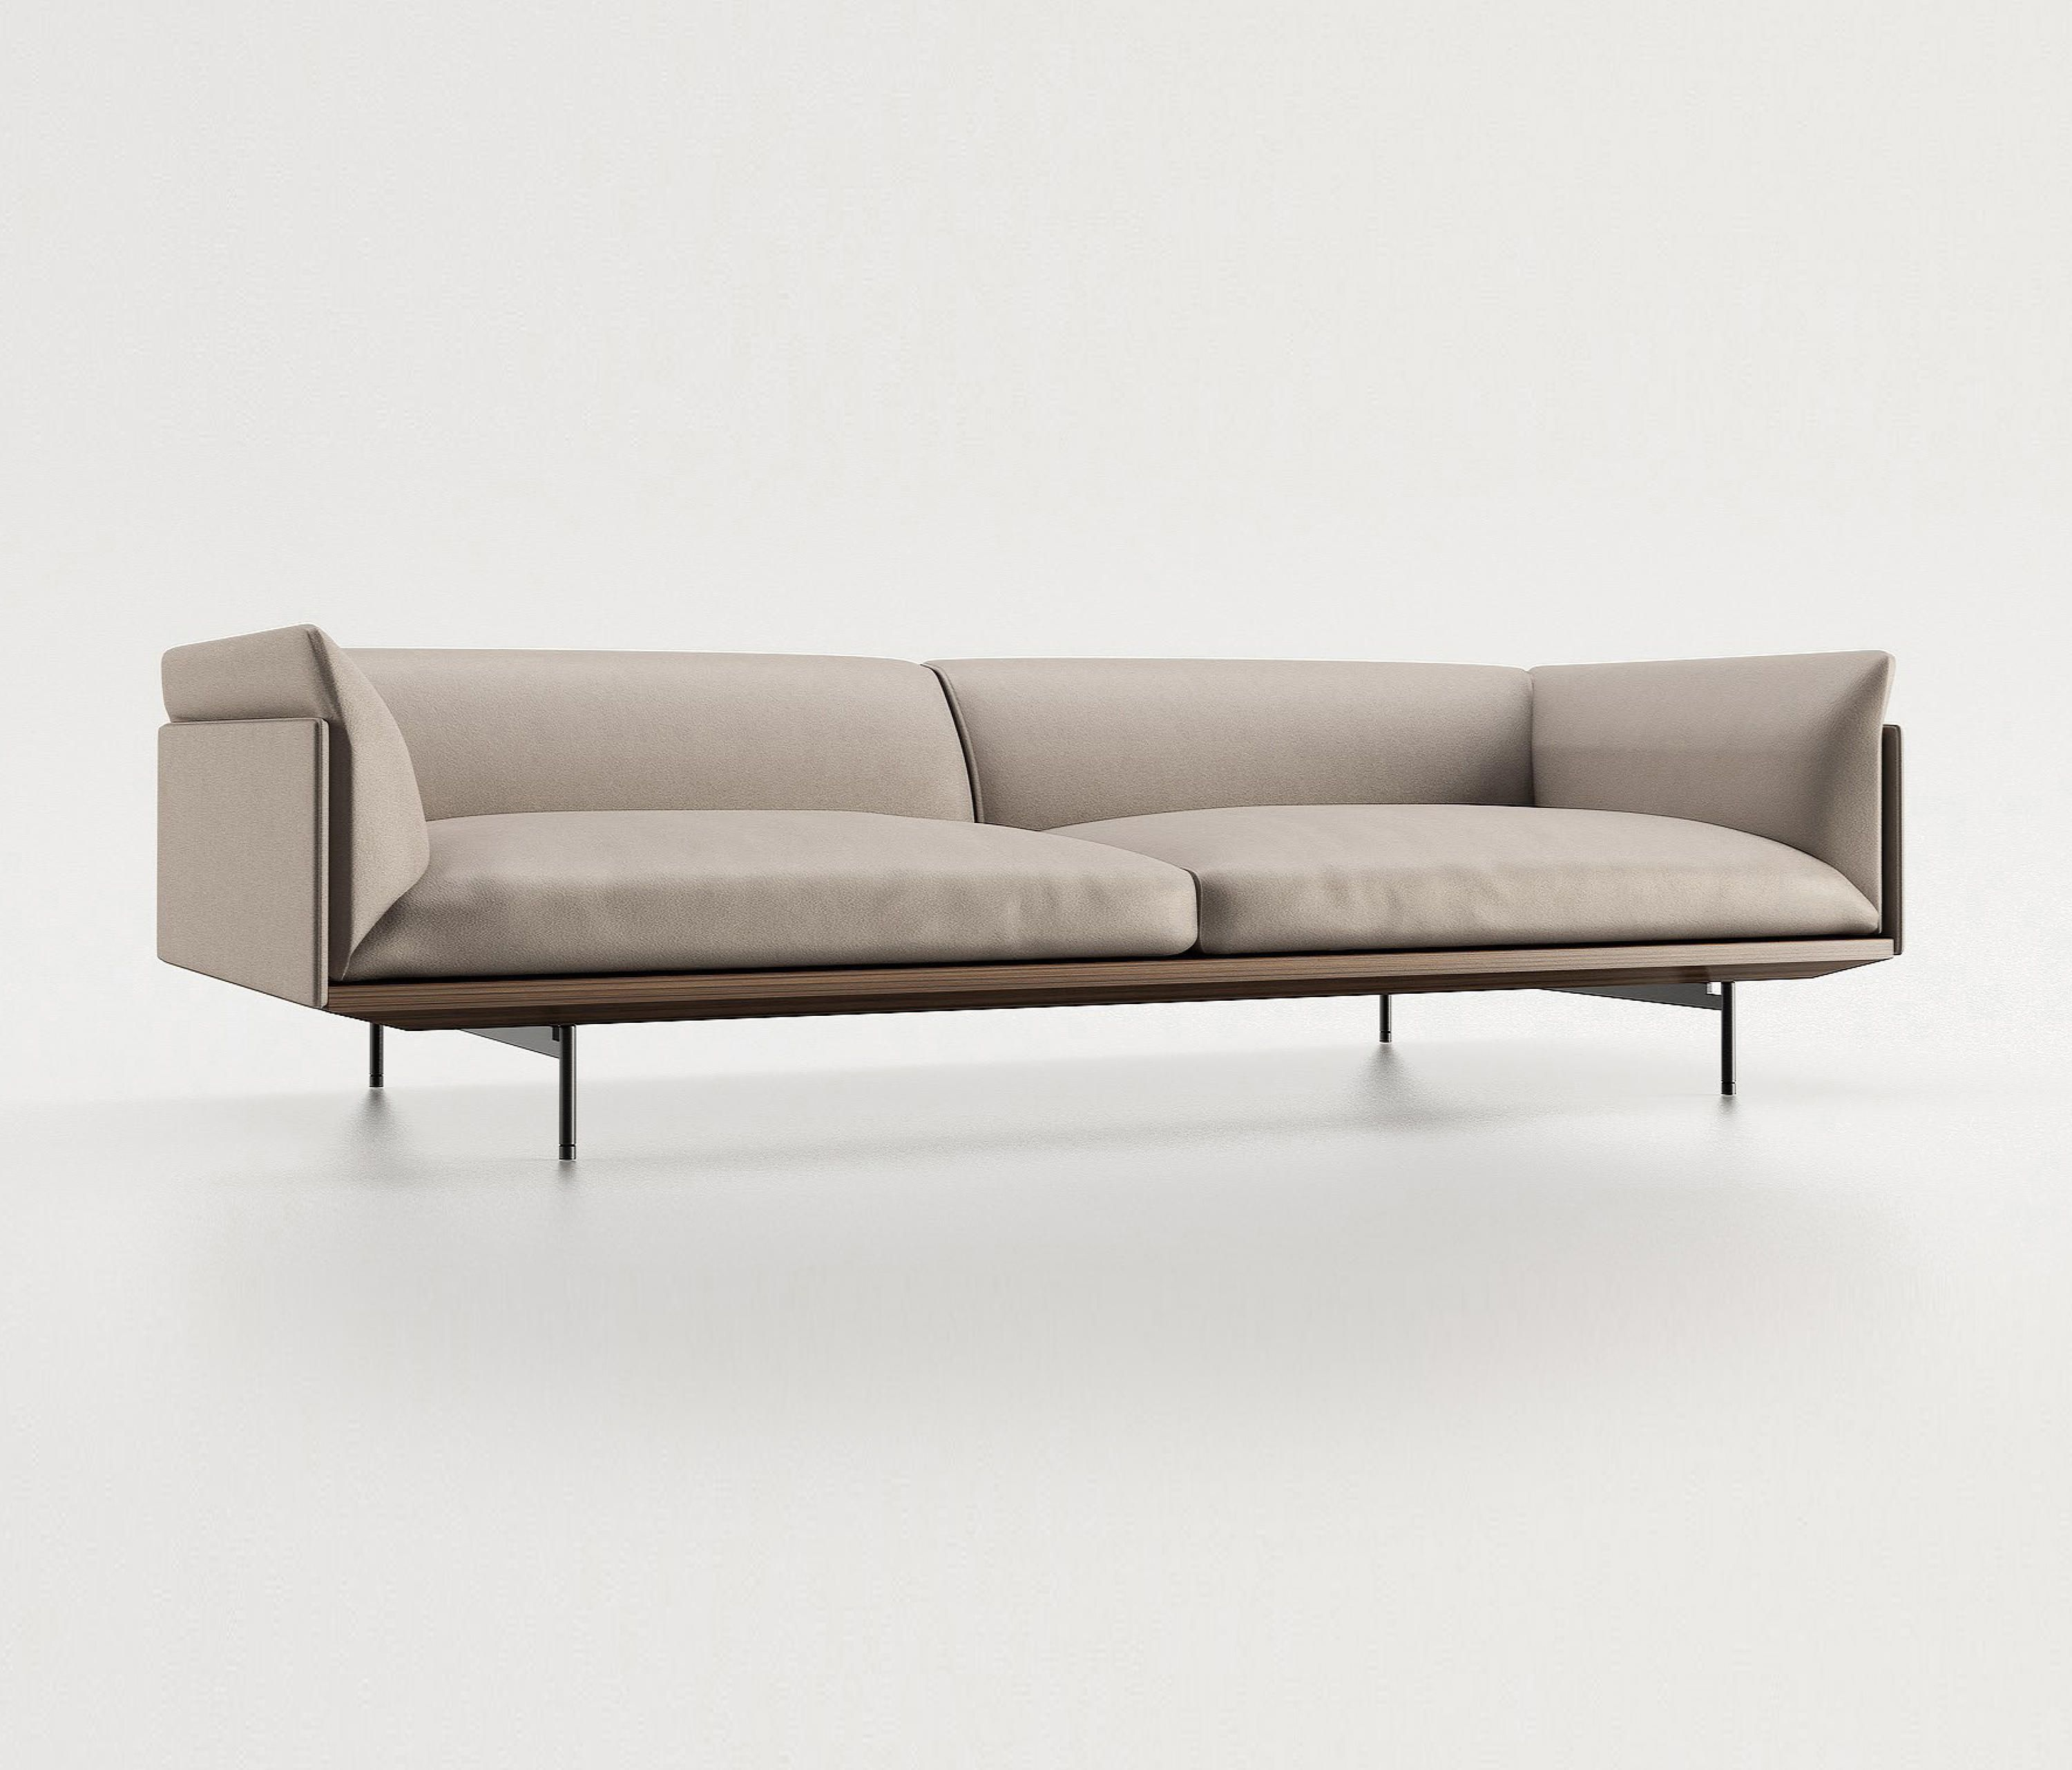 Corio By Enne Lounge Sofas With